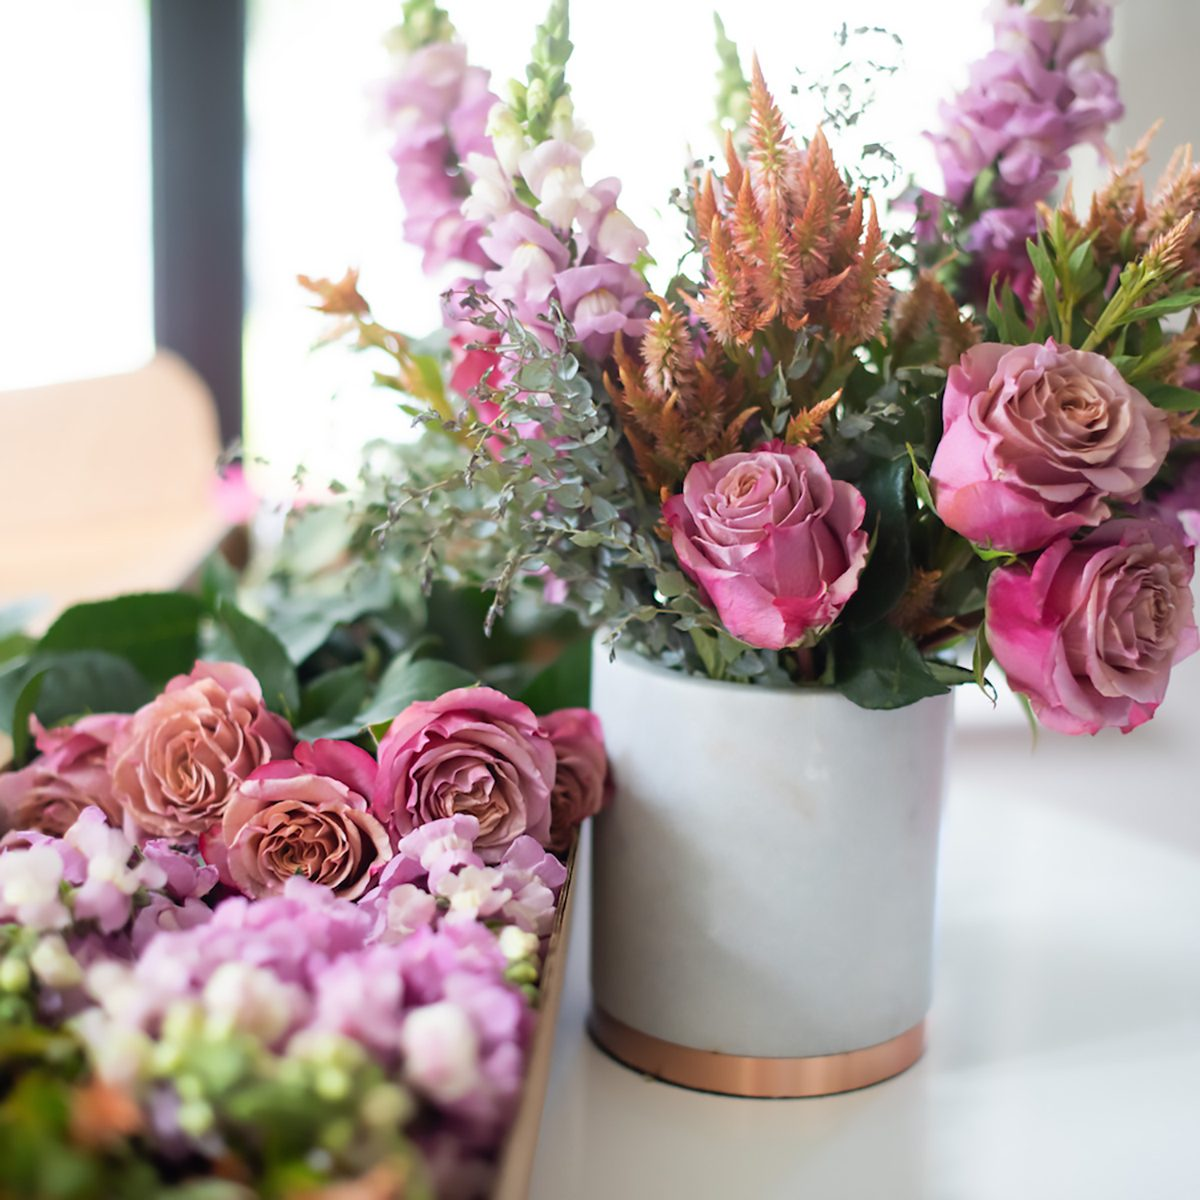 Matildas Bloombox bouquet